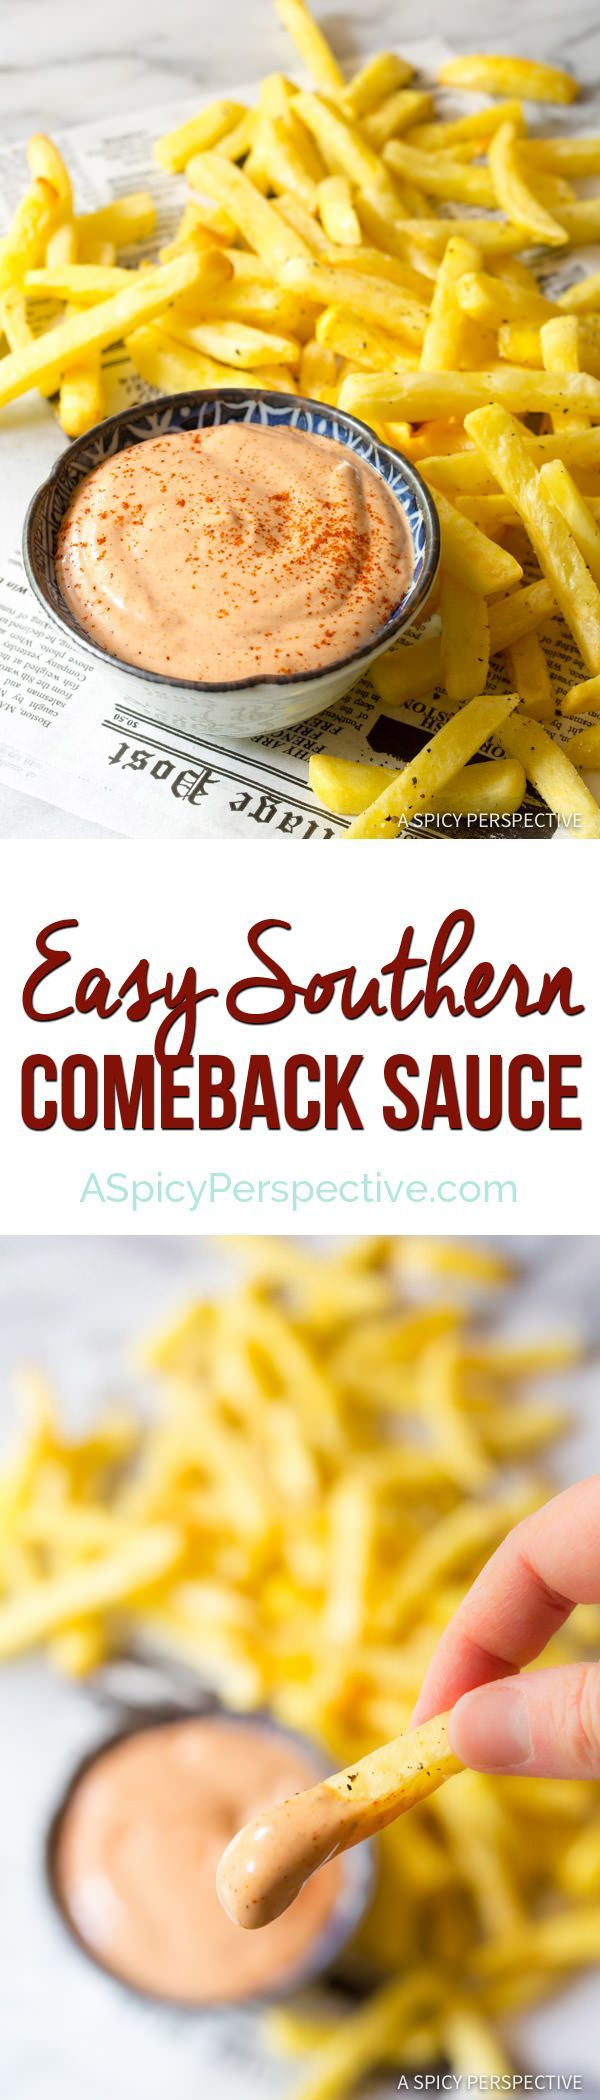 Easy Southern Comeback Sauce Recipe | http://ASpicyPerspective.com